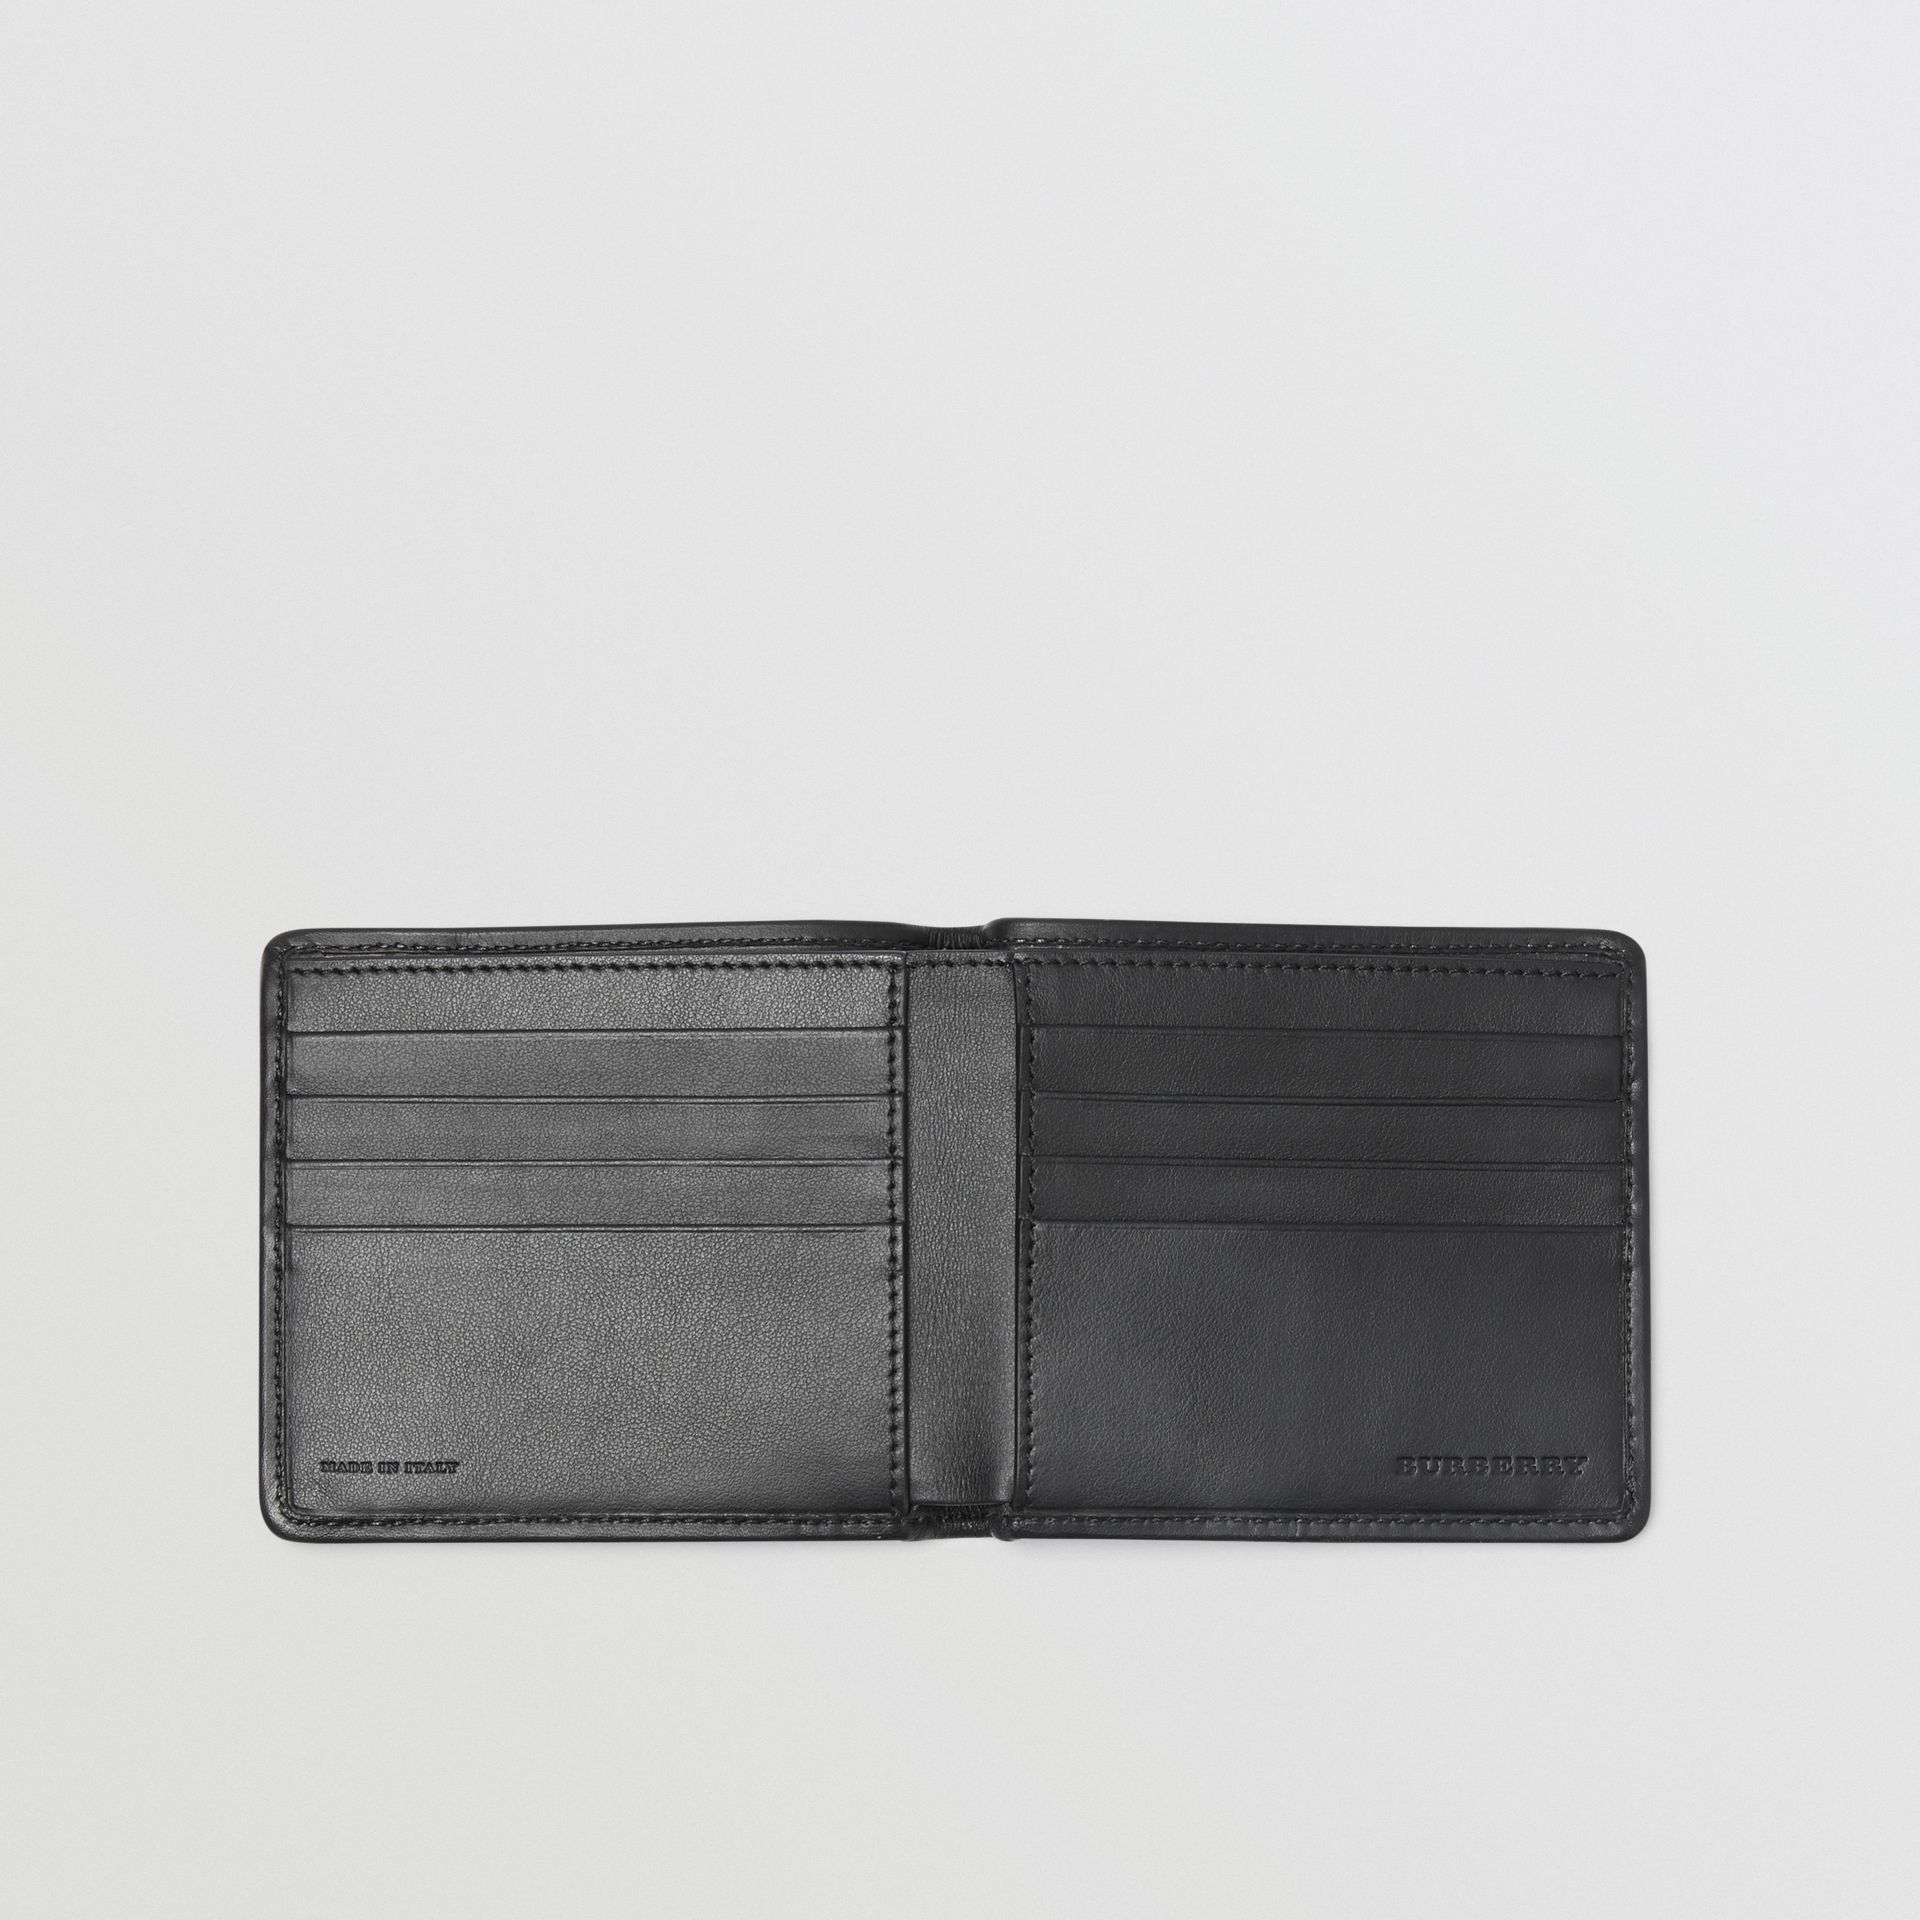 1983 Check and Leather International Bifold Wallet in Black - Men | Burberry Australia - gallery image 3